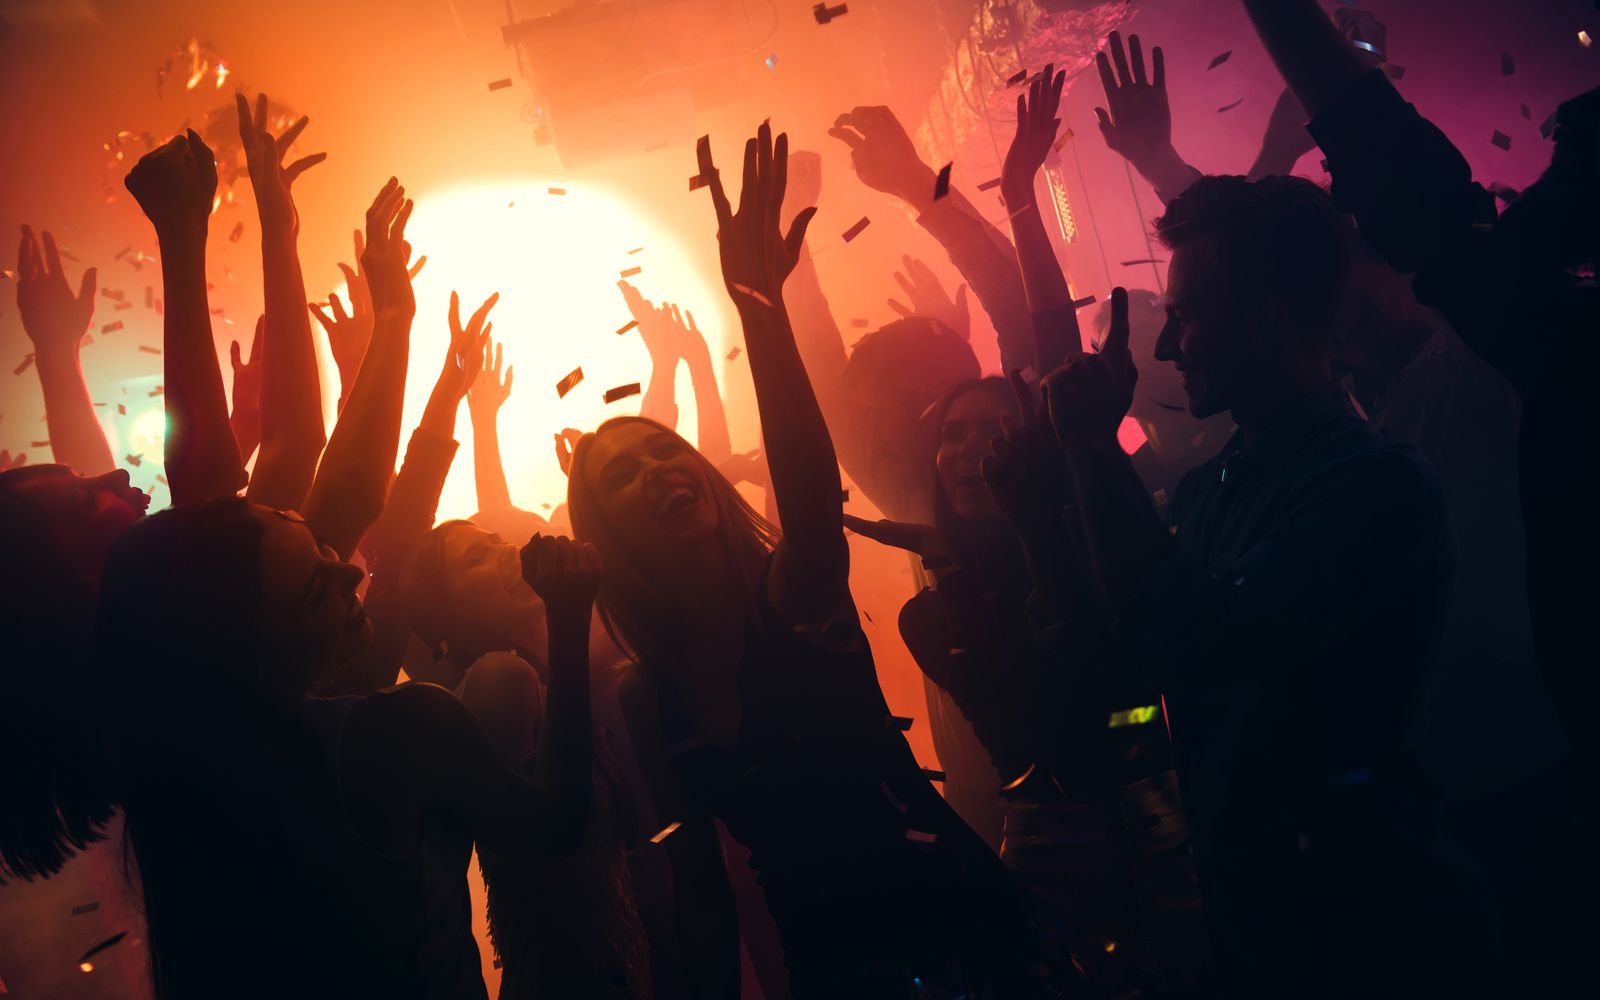 Photo of many party people buddies dancing yellow lights confetti flying everywhere nightclub event hands raised up wear shiny clothes